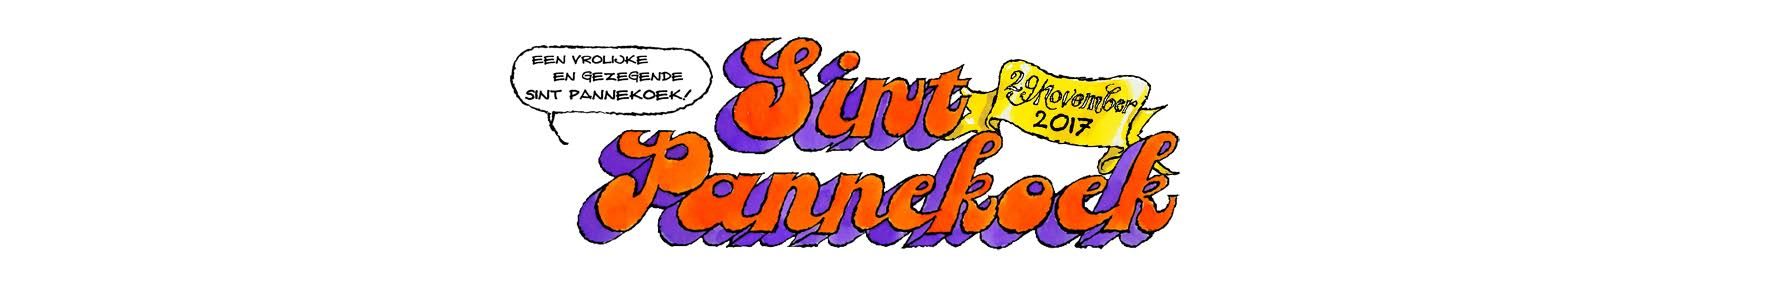 cropped-Sint-Pannekoek-header-website-2.jpg